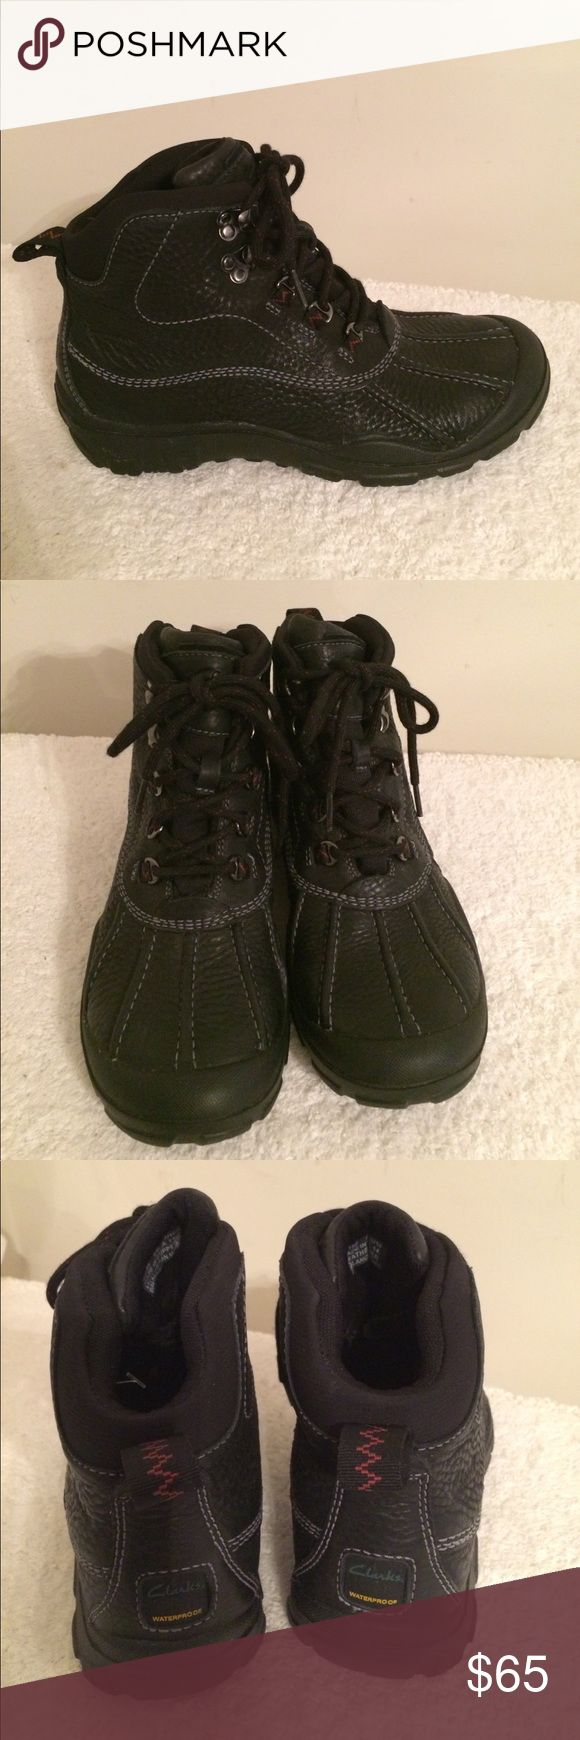 Men's Clarks black boots Very close to brand new. Extremely comfortable. from a non smoker seller. 20% off 3 & more items. Thank you for visiting!!💗 Clarks Shoes Boots